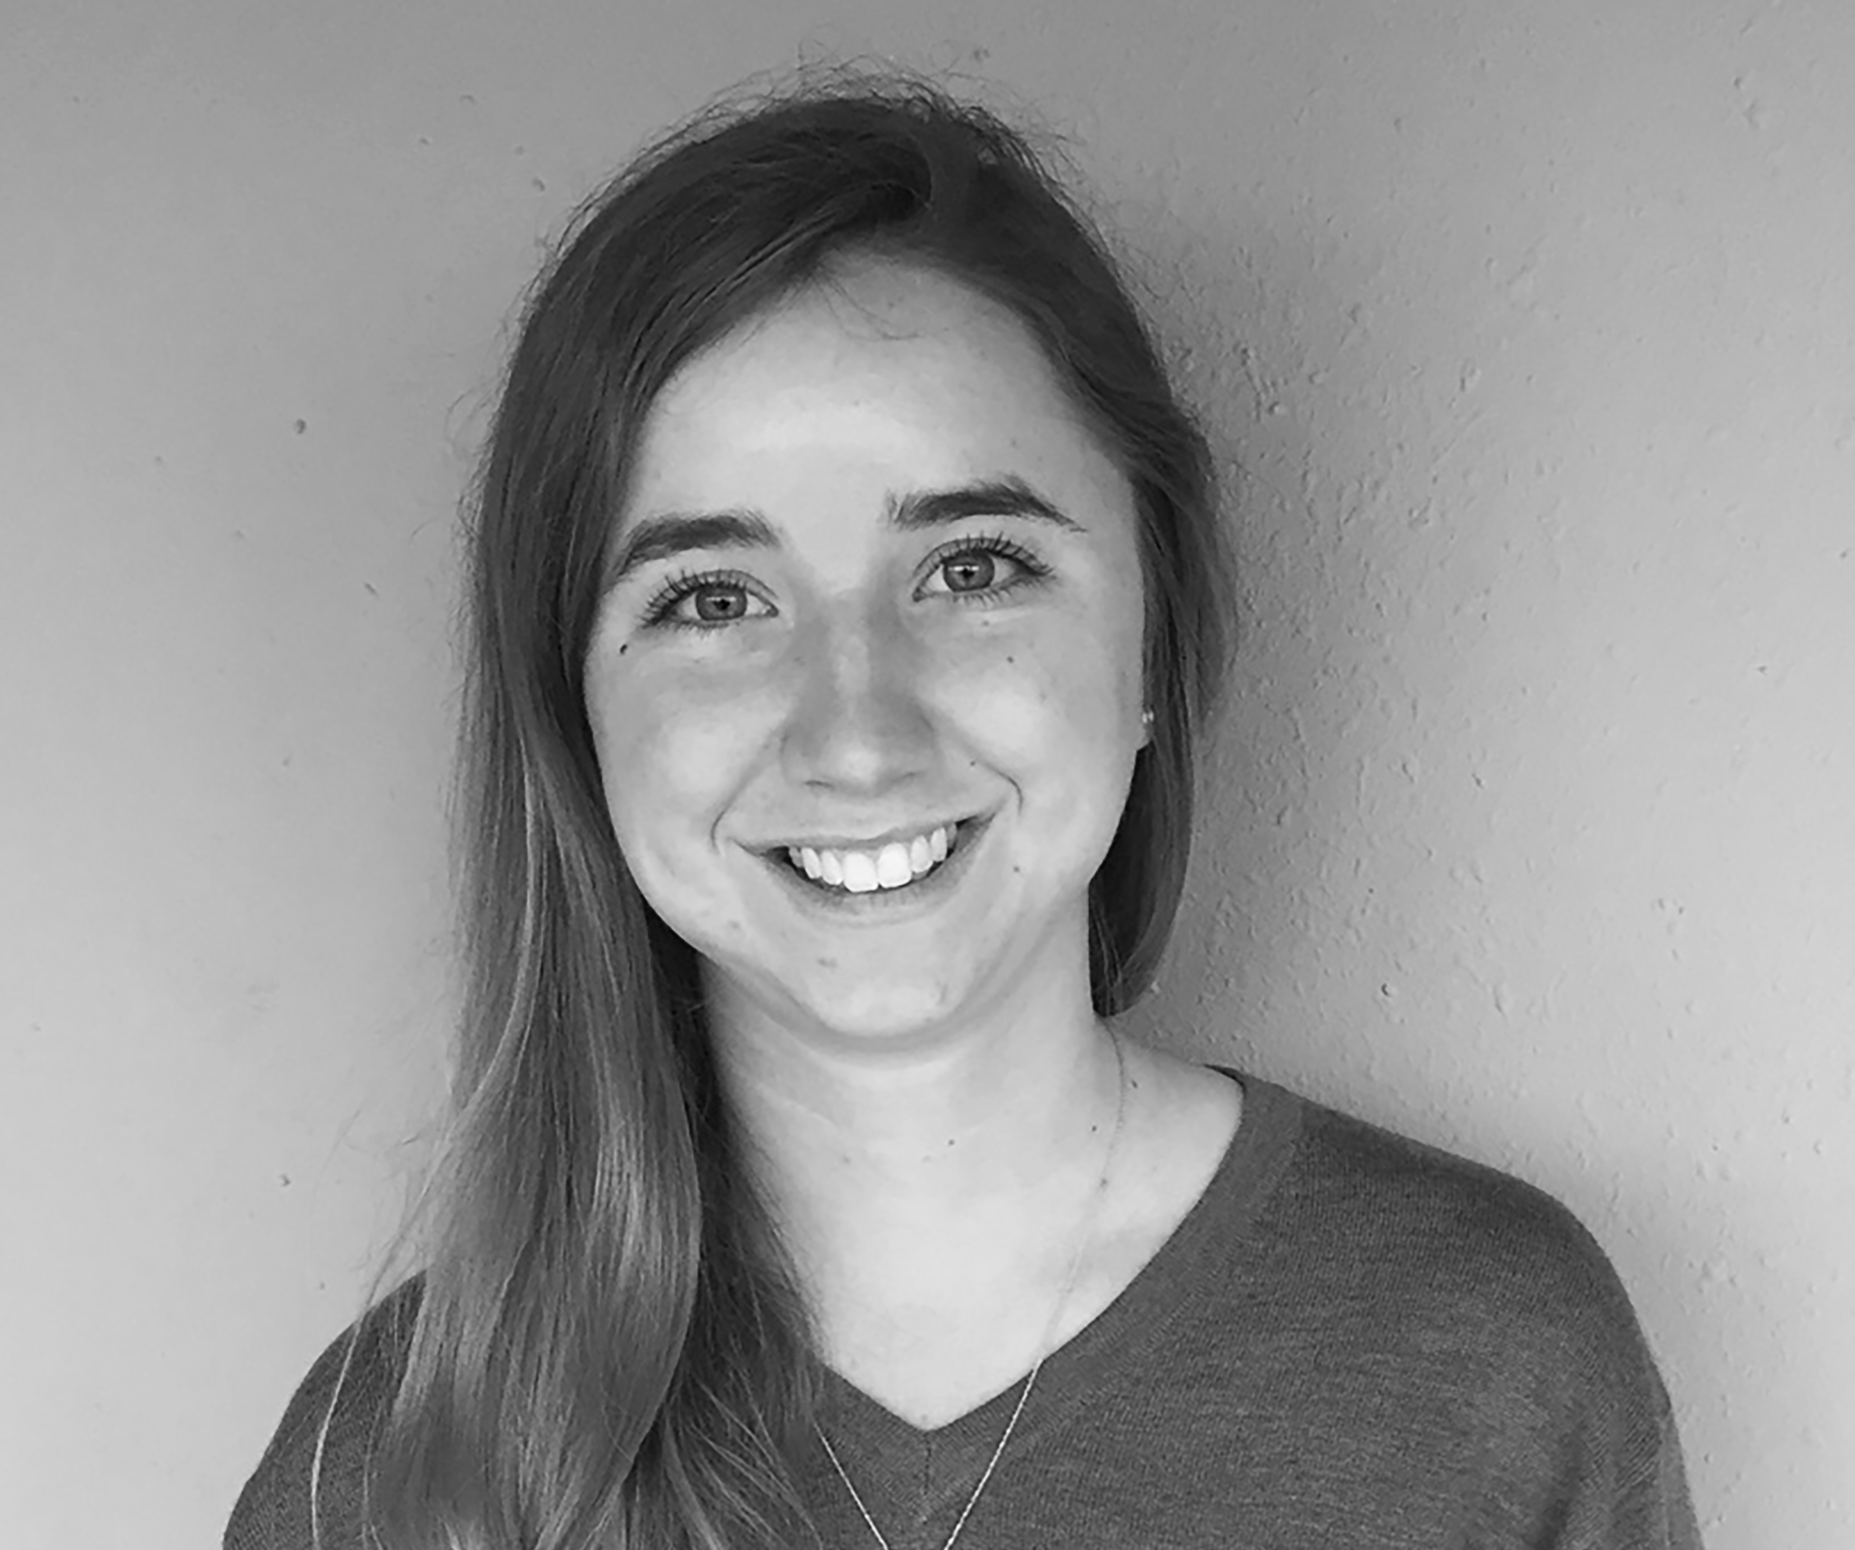 Hannah Schuele   Customer Success Manager  Originally from Michigan, Hannah spent the last few years studying Psychology at Tulane University. She started as our customer success intern and joined the team in May of 2018 as our first Customer Success Associate. She's ecstatic to be sticking around New Orleans and looking forward to the opportunity to work at a startup with a great mission.